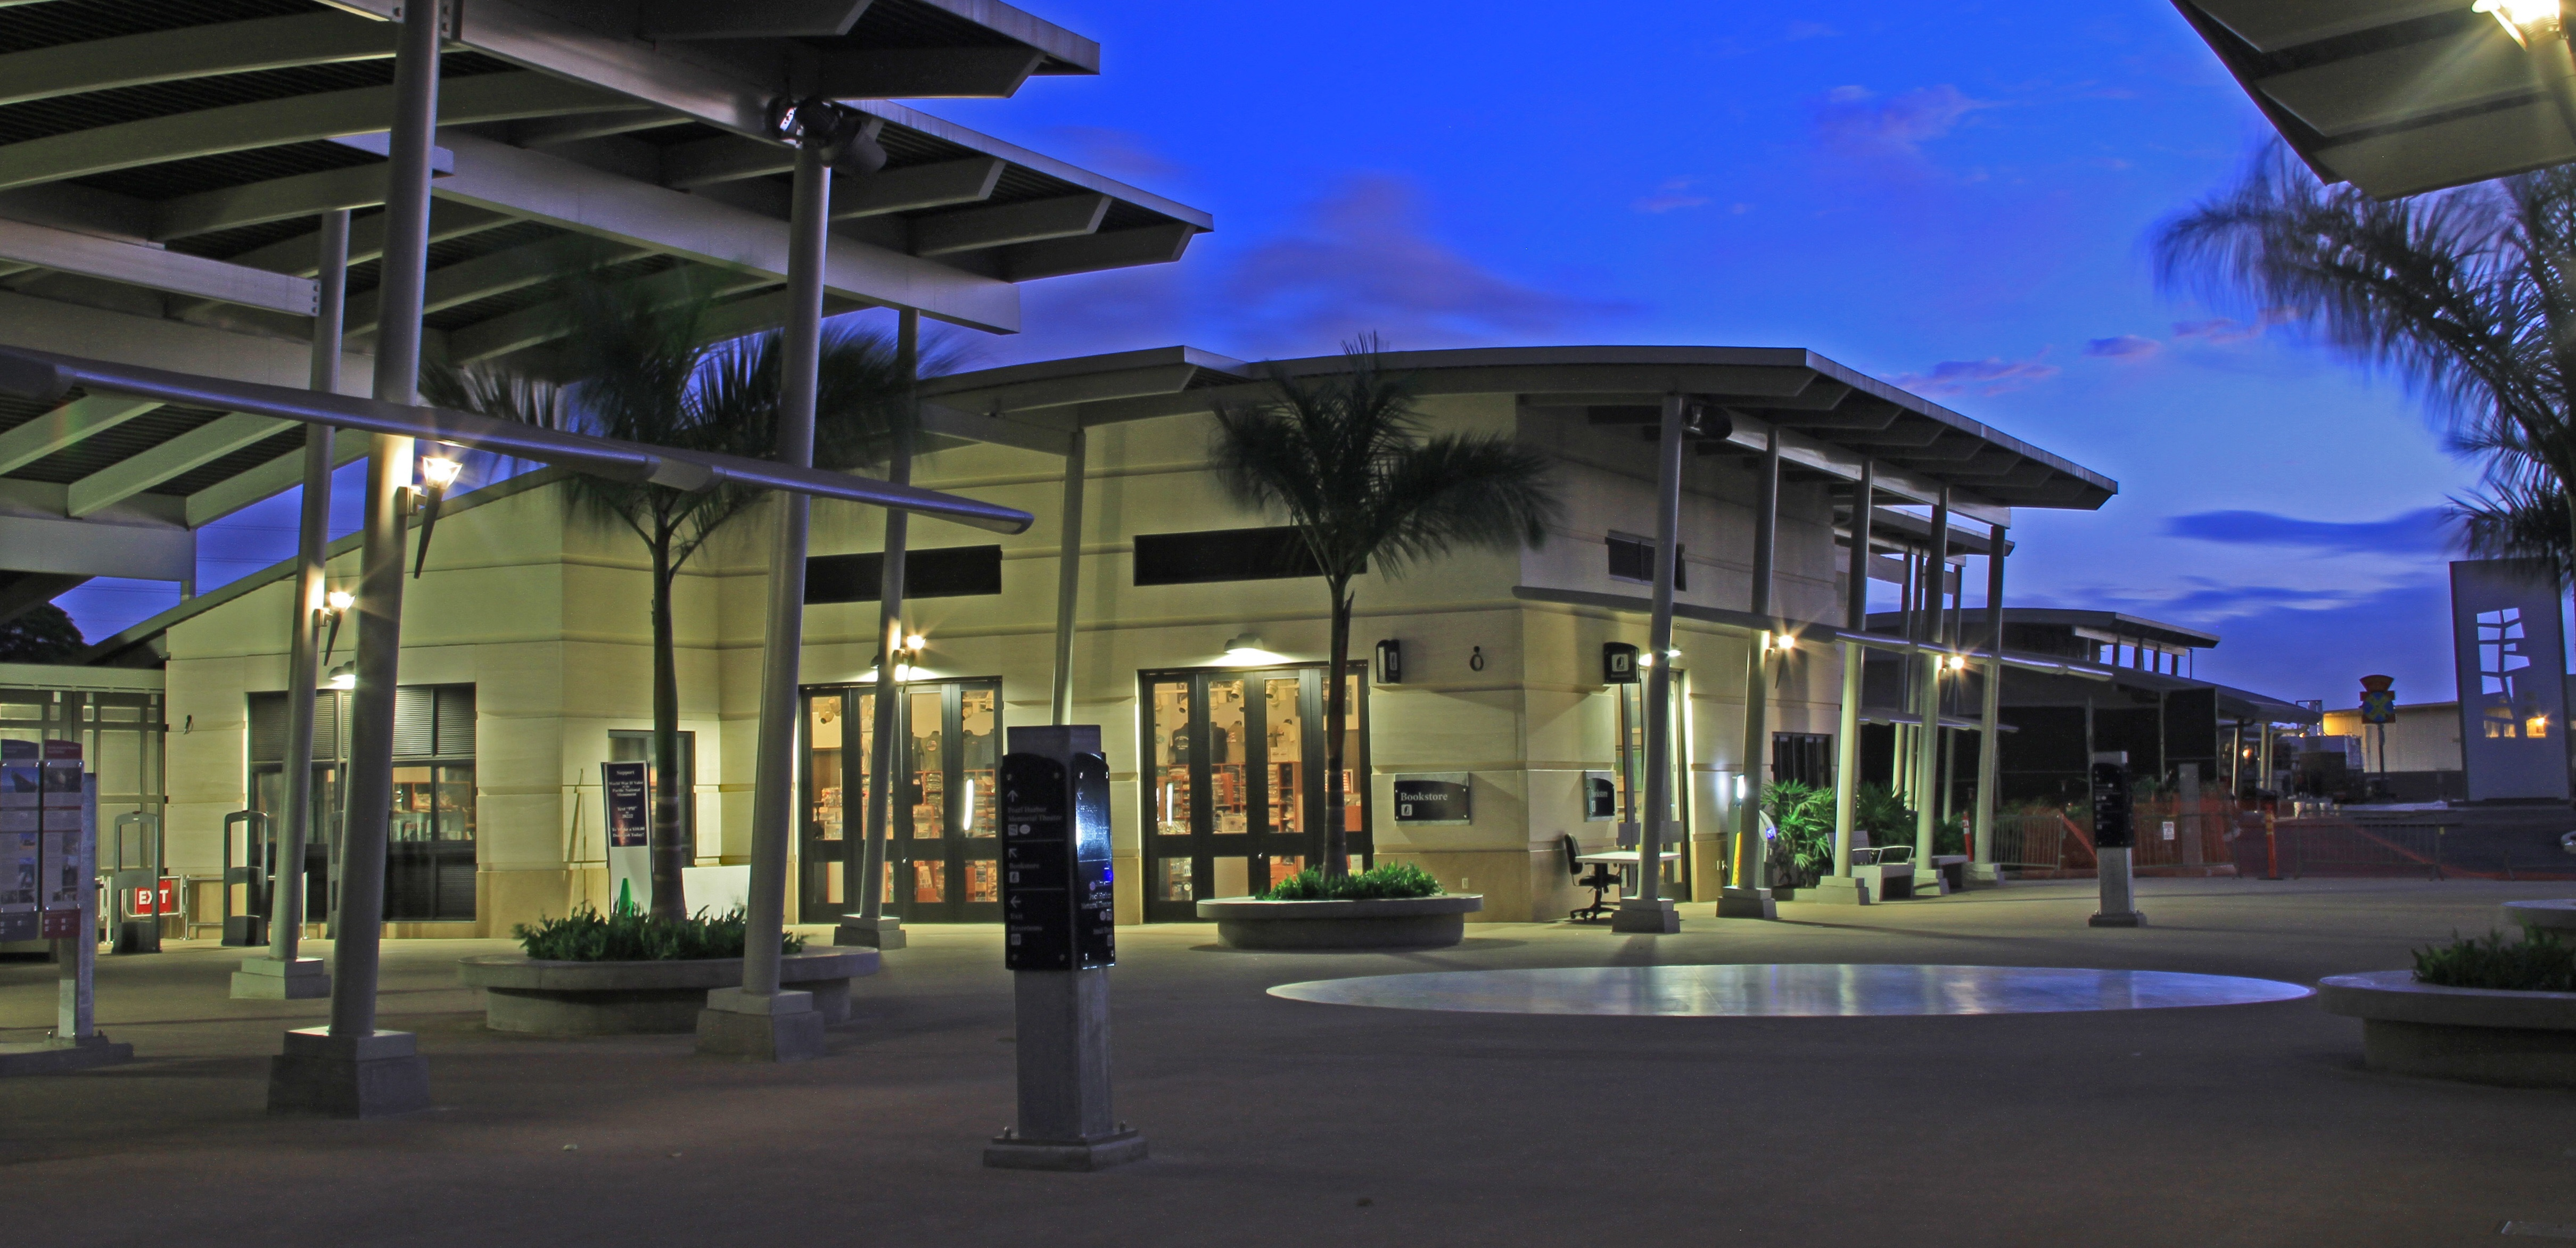 The Pearl Harbor Visitor Center bookstore in the evening.